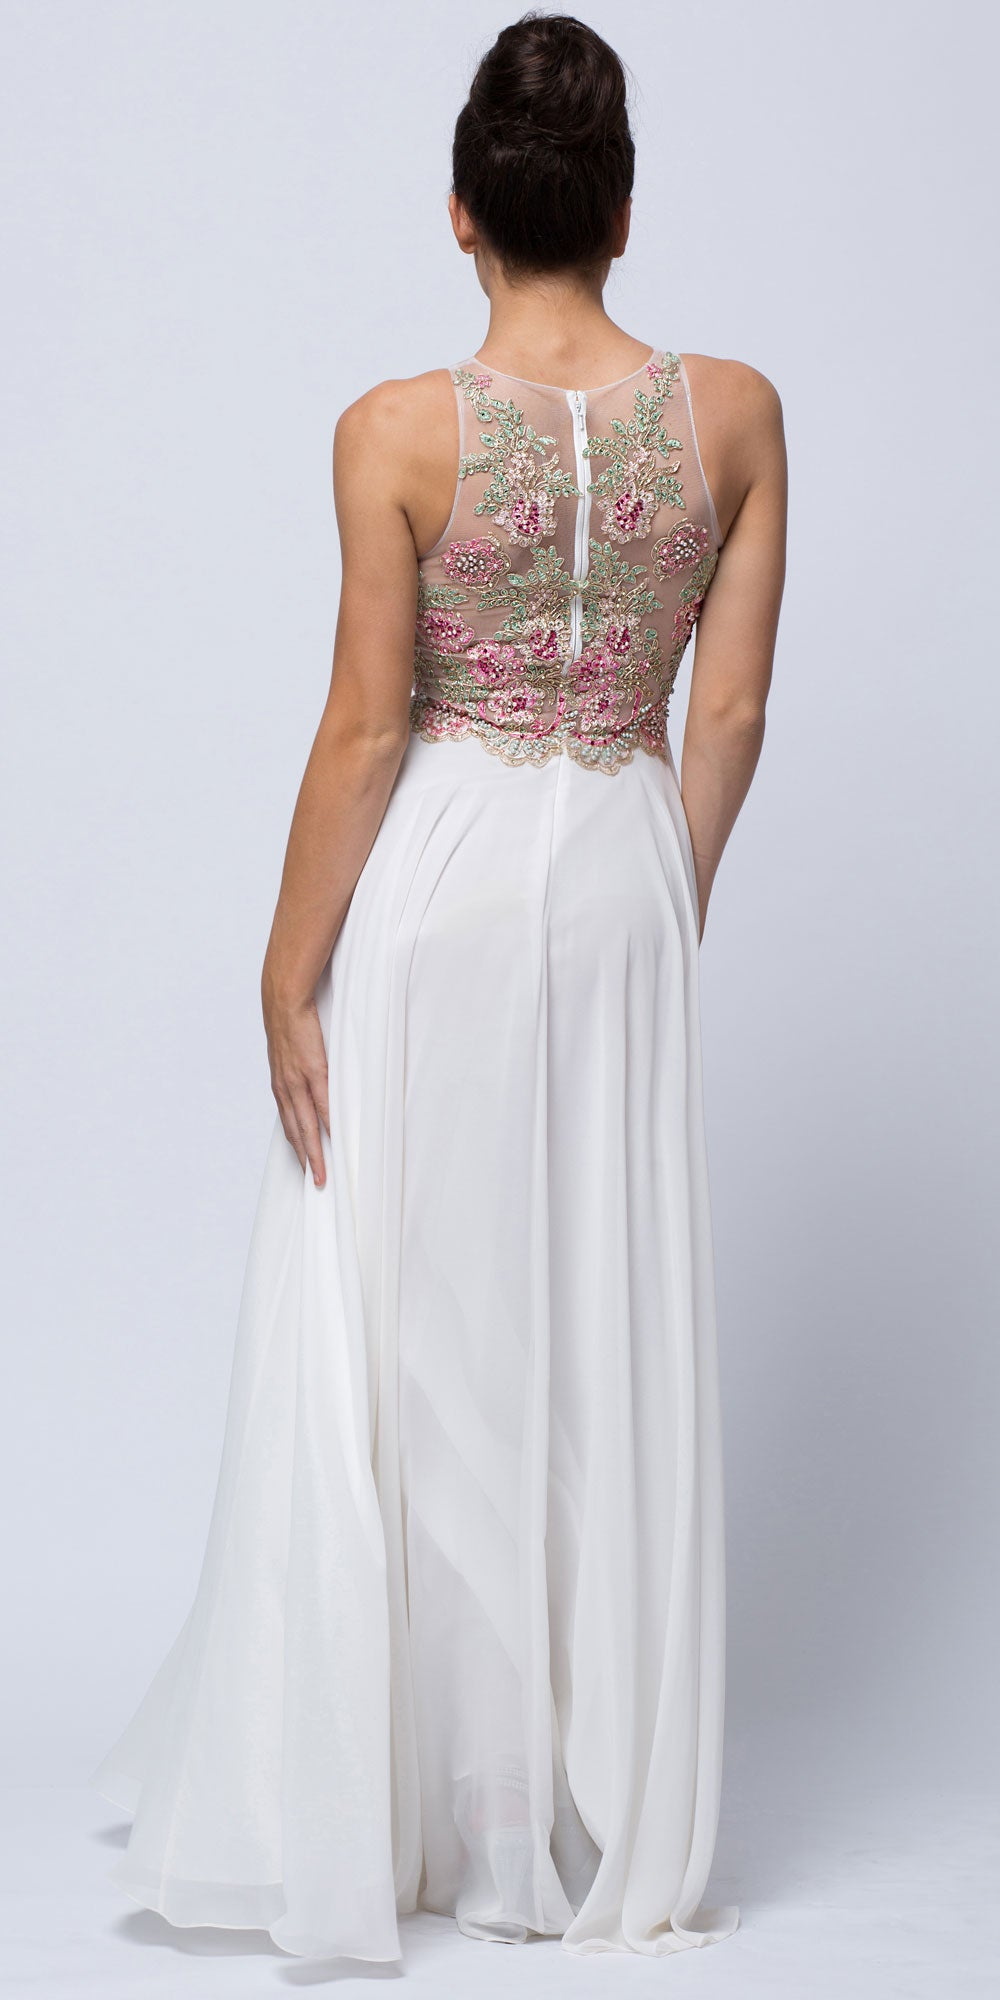 Image of Sleeveless Floral Accent Beaded Top Long Prom Dress back in Ivory/Pink